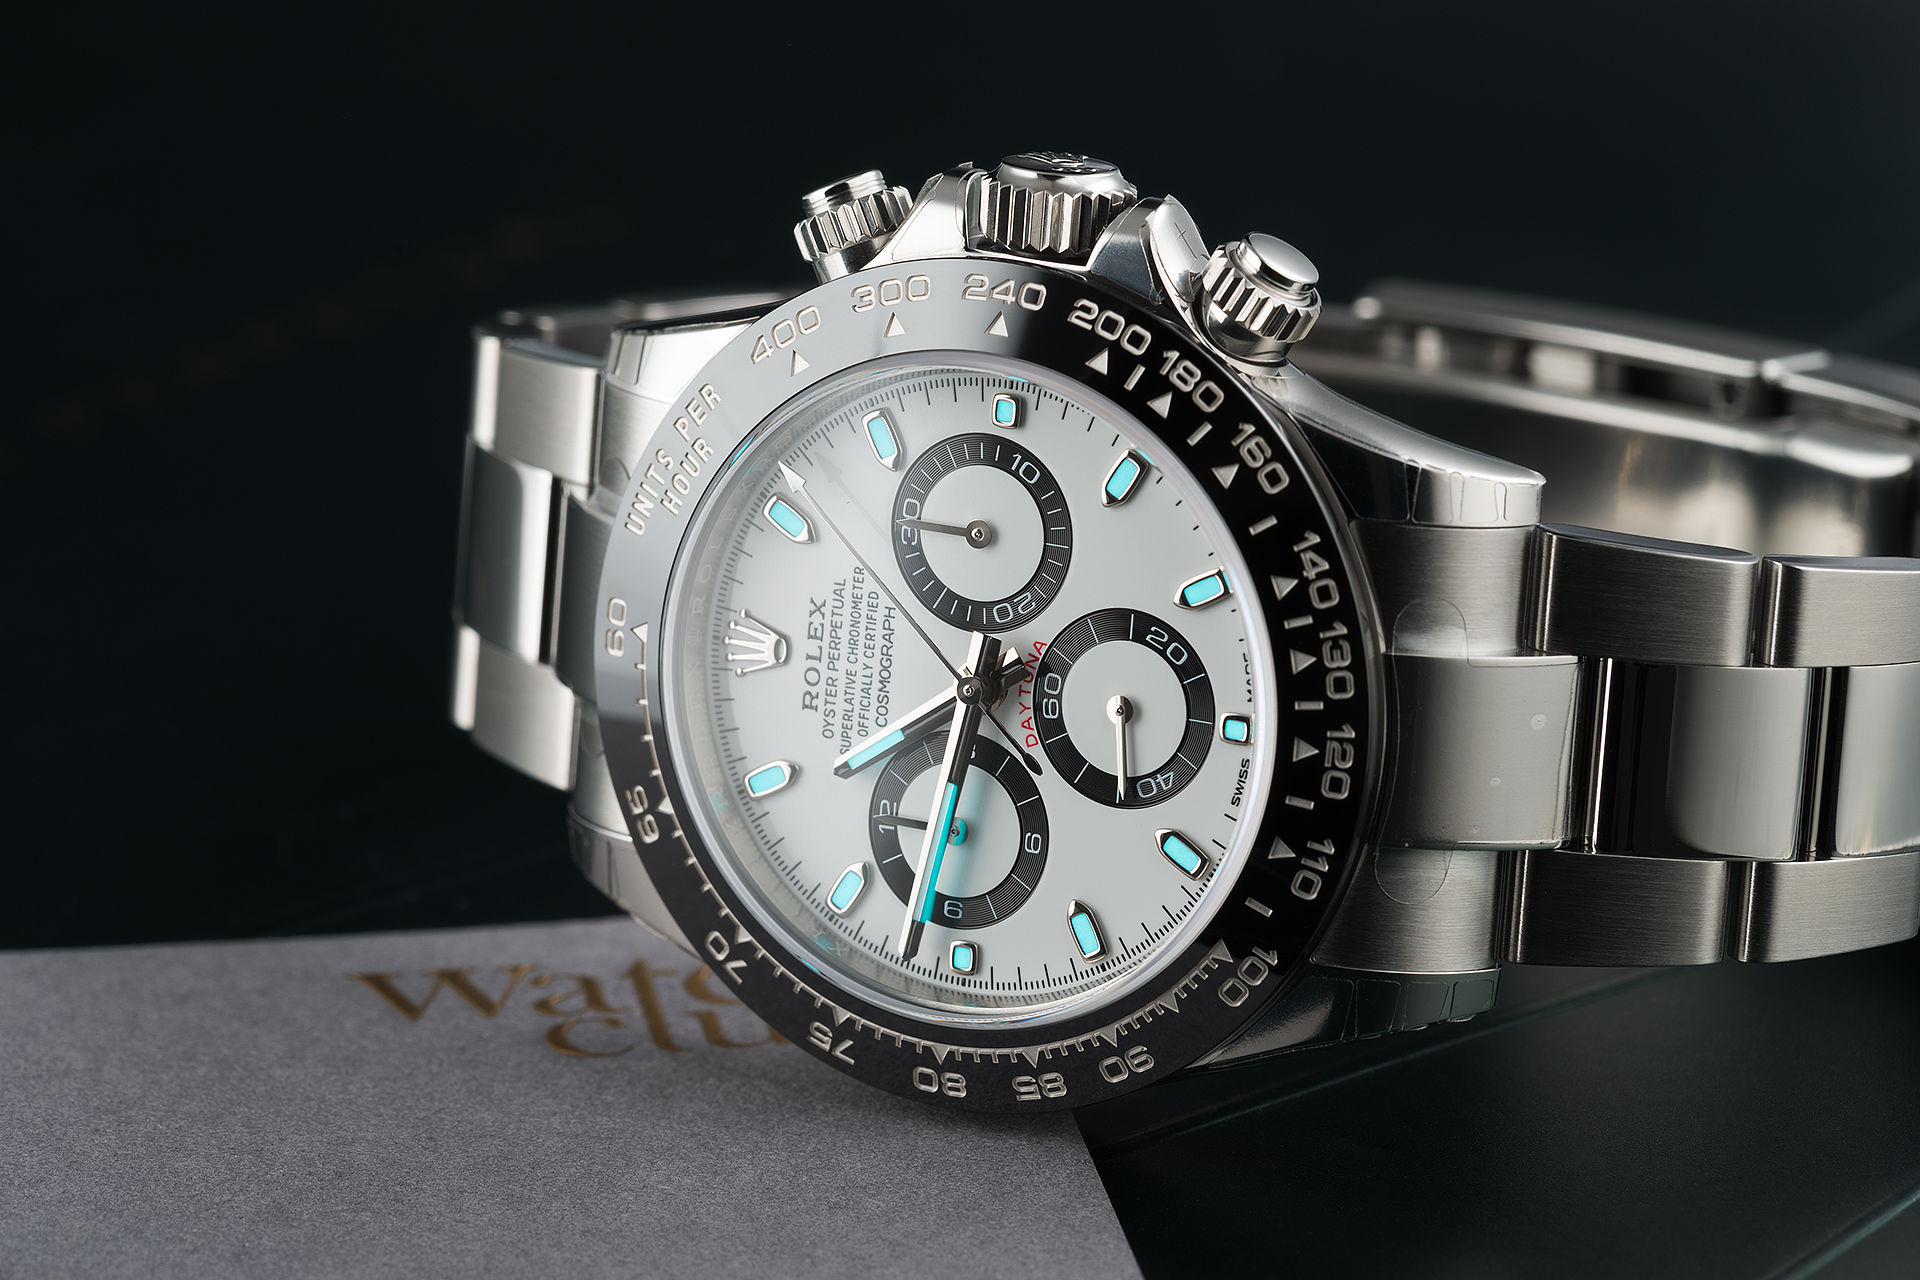 rolex cosmograph daytona watches ref 116500ln 39 brand. Black Bedroom Furniture Sets. Home Design Ideas